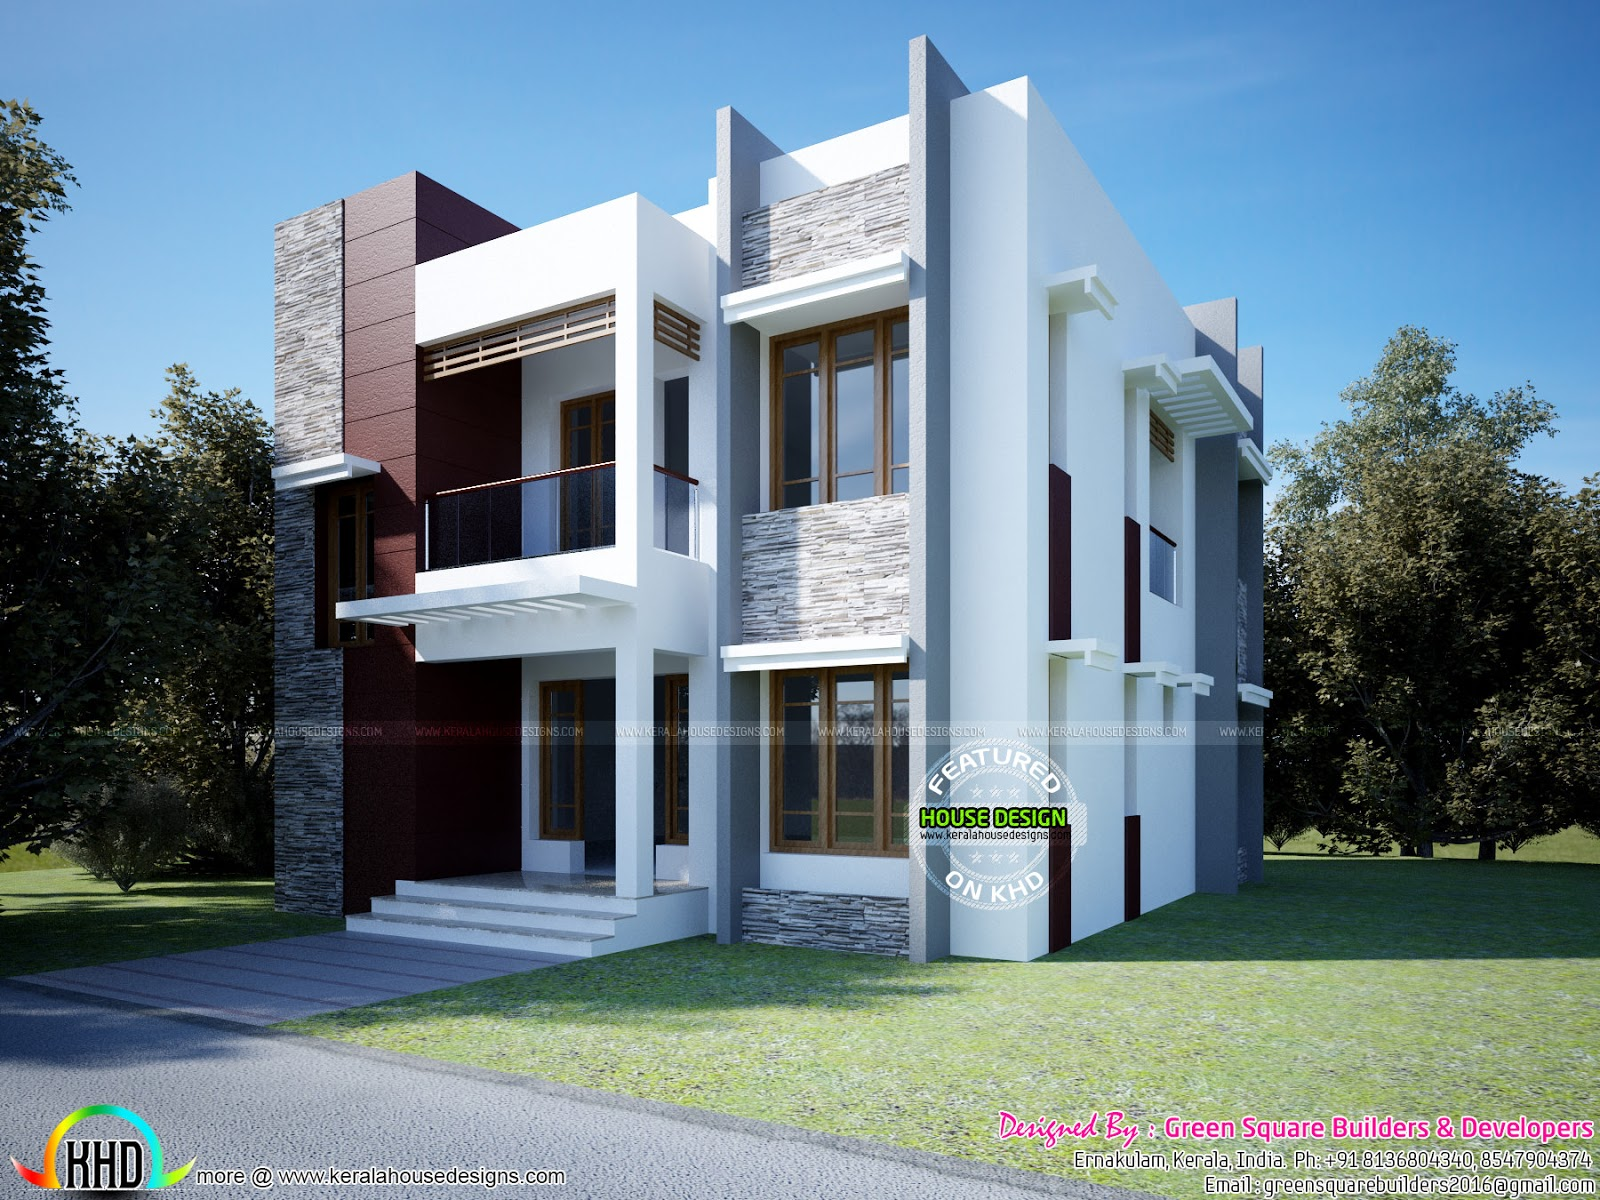 1618 sq ft modern box type home kerala home design and for Modern box type house design